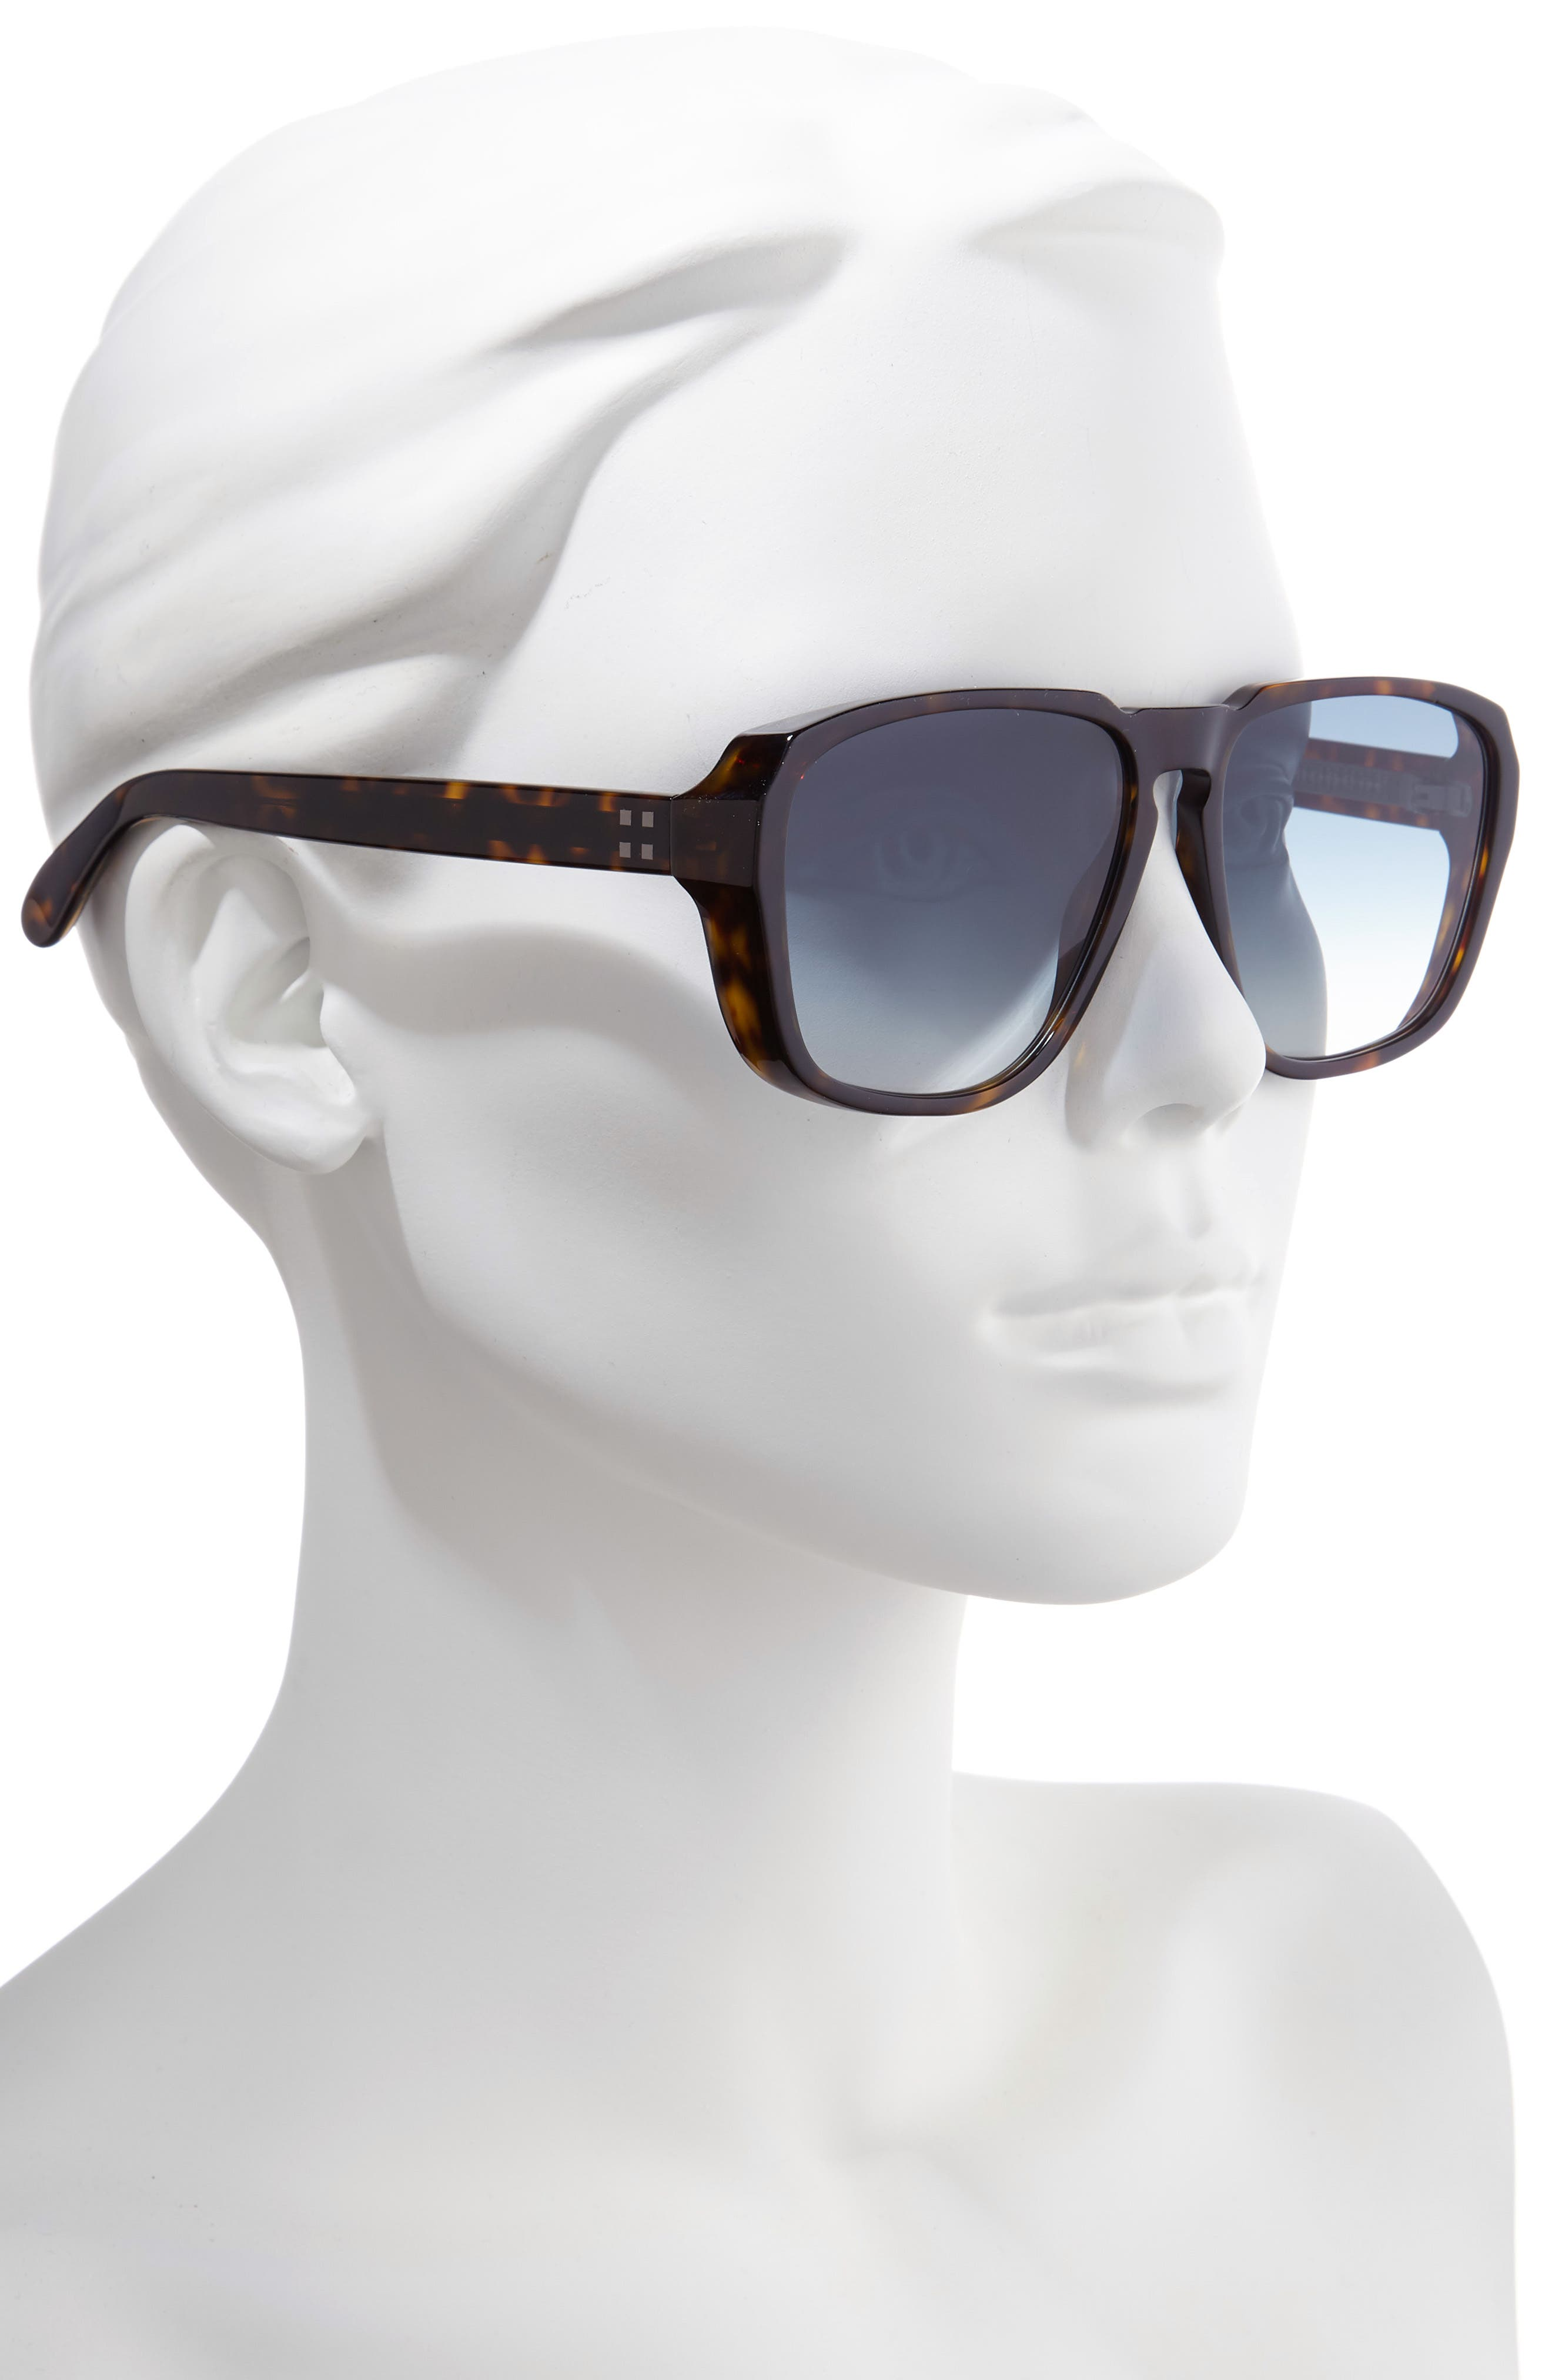 60mm Flat Top Sunglasses,                             Alternate thumbnail 2, color,                             DARK HAVANA